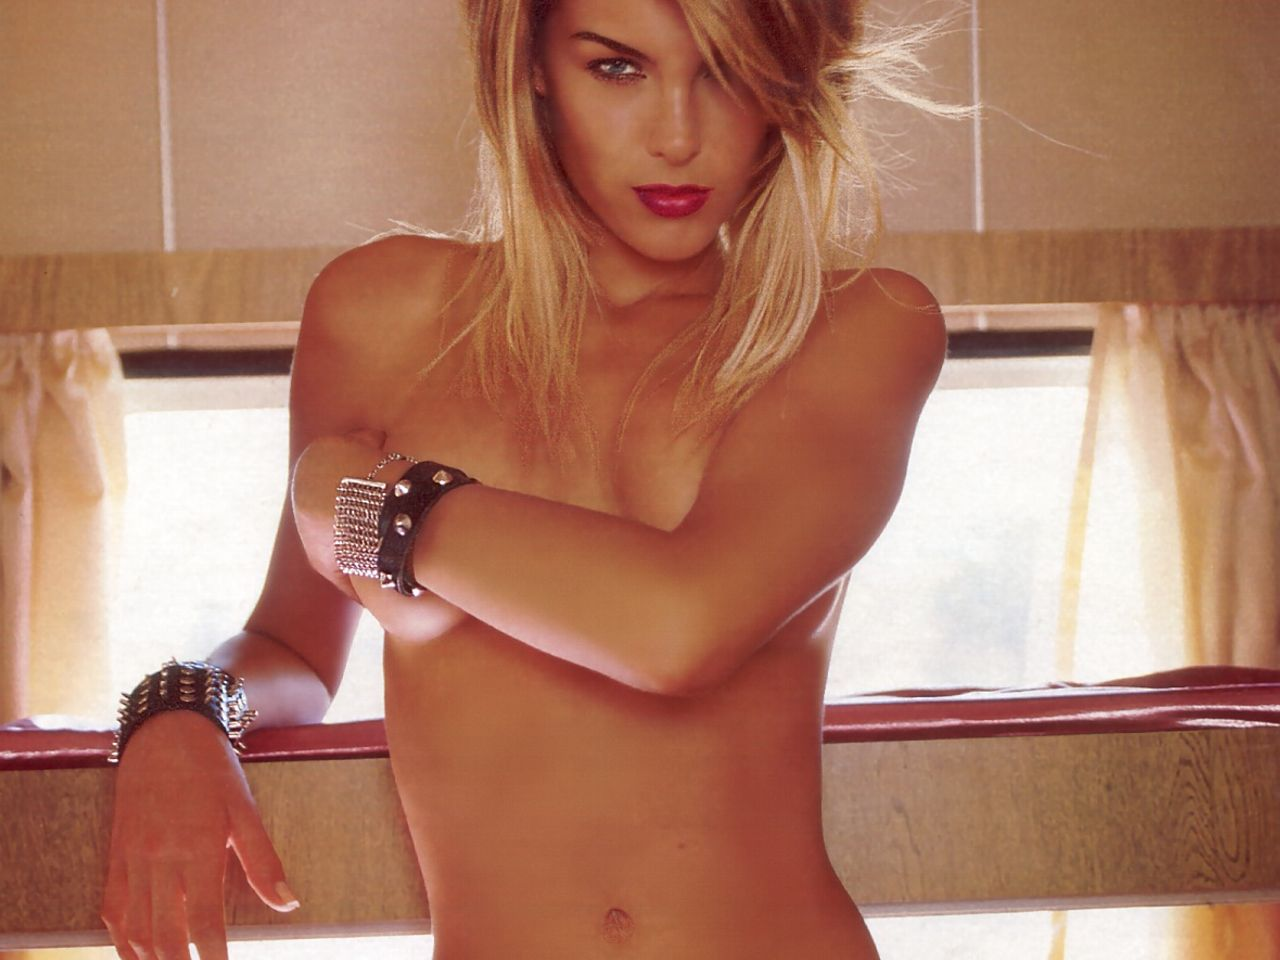 Ana Hickmann Hot Pictures, Photo Gallery & Wallpapers